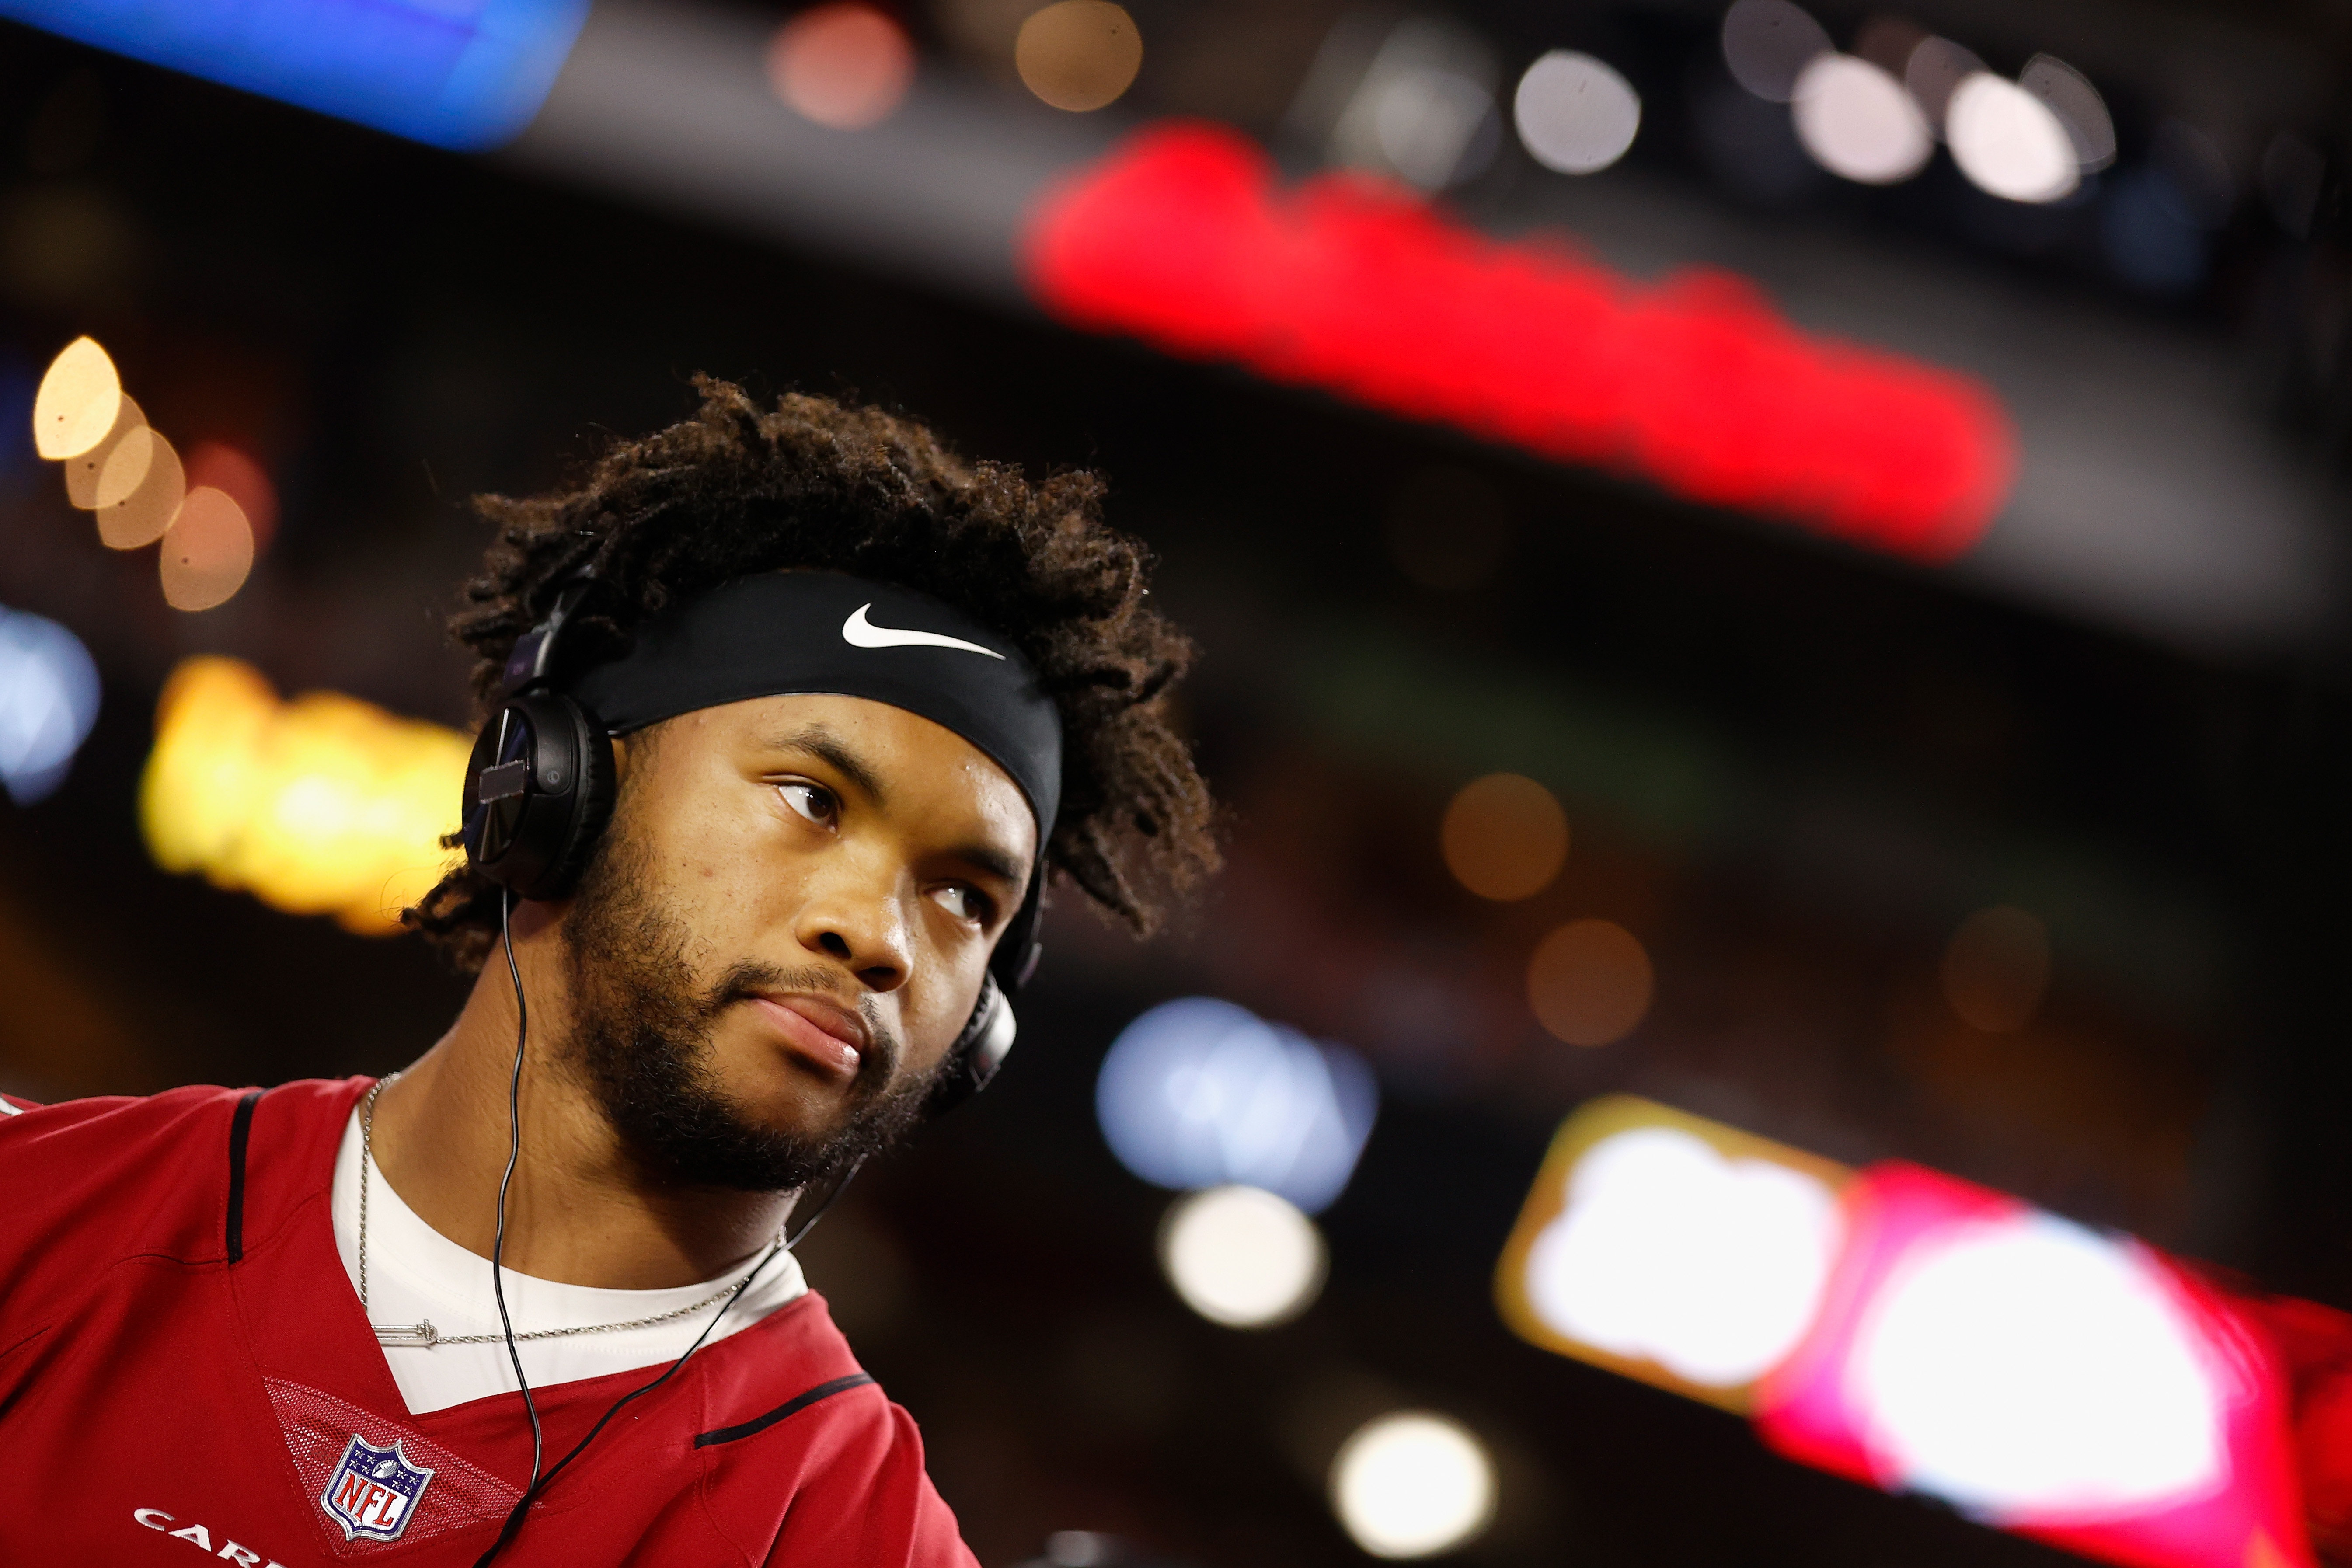 Quarterback Kyler Murray #1 of the Arizona Cardinals stands on the sidelines during the second half of the NFL preseason game against the Kansas City Chiefs at State Farm Stadium on August 20, 2021 in Glendale, Arizona. The Chiefs defeated the Cardinals 17-10.